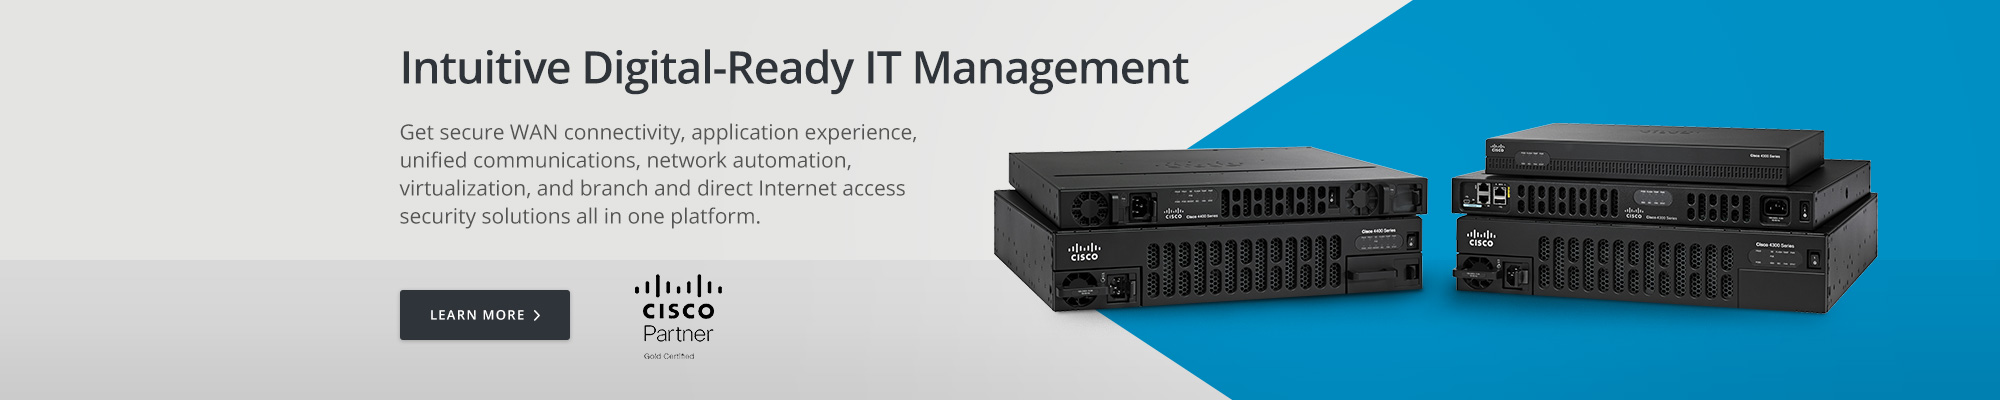 Cisco Intuitive Digital-Ready IT Management